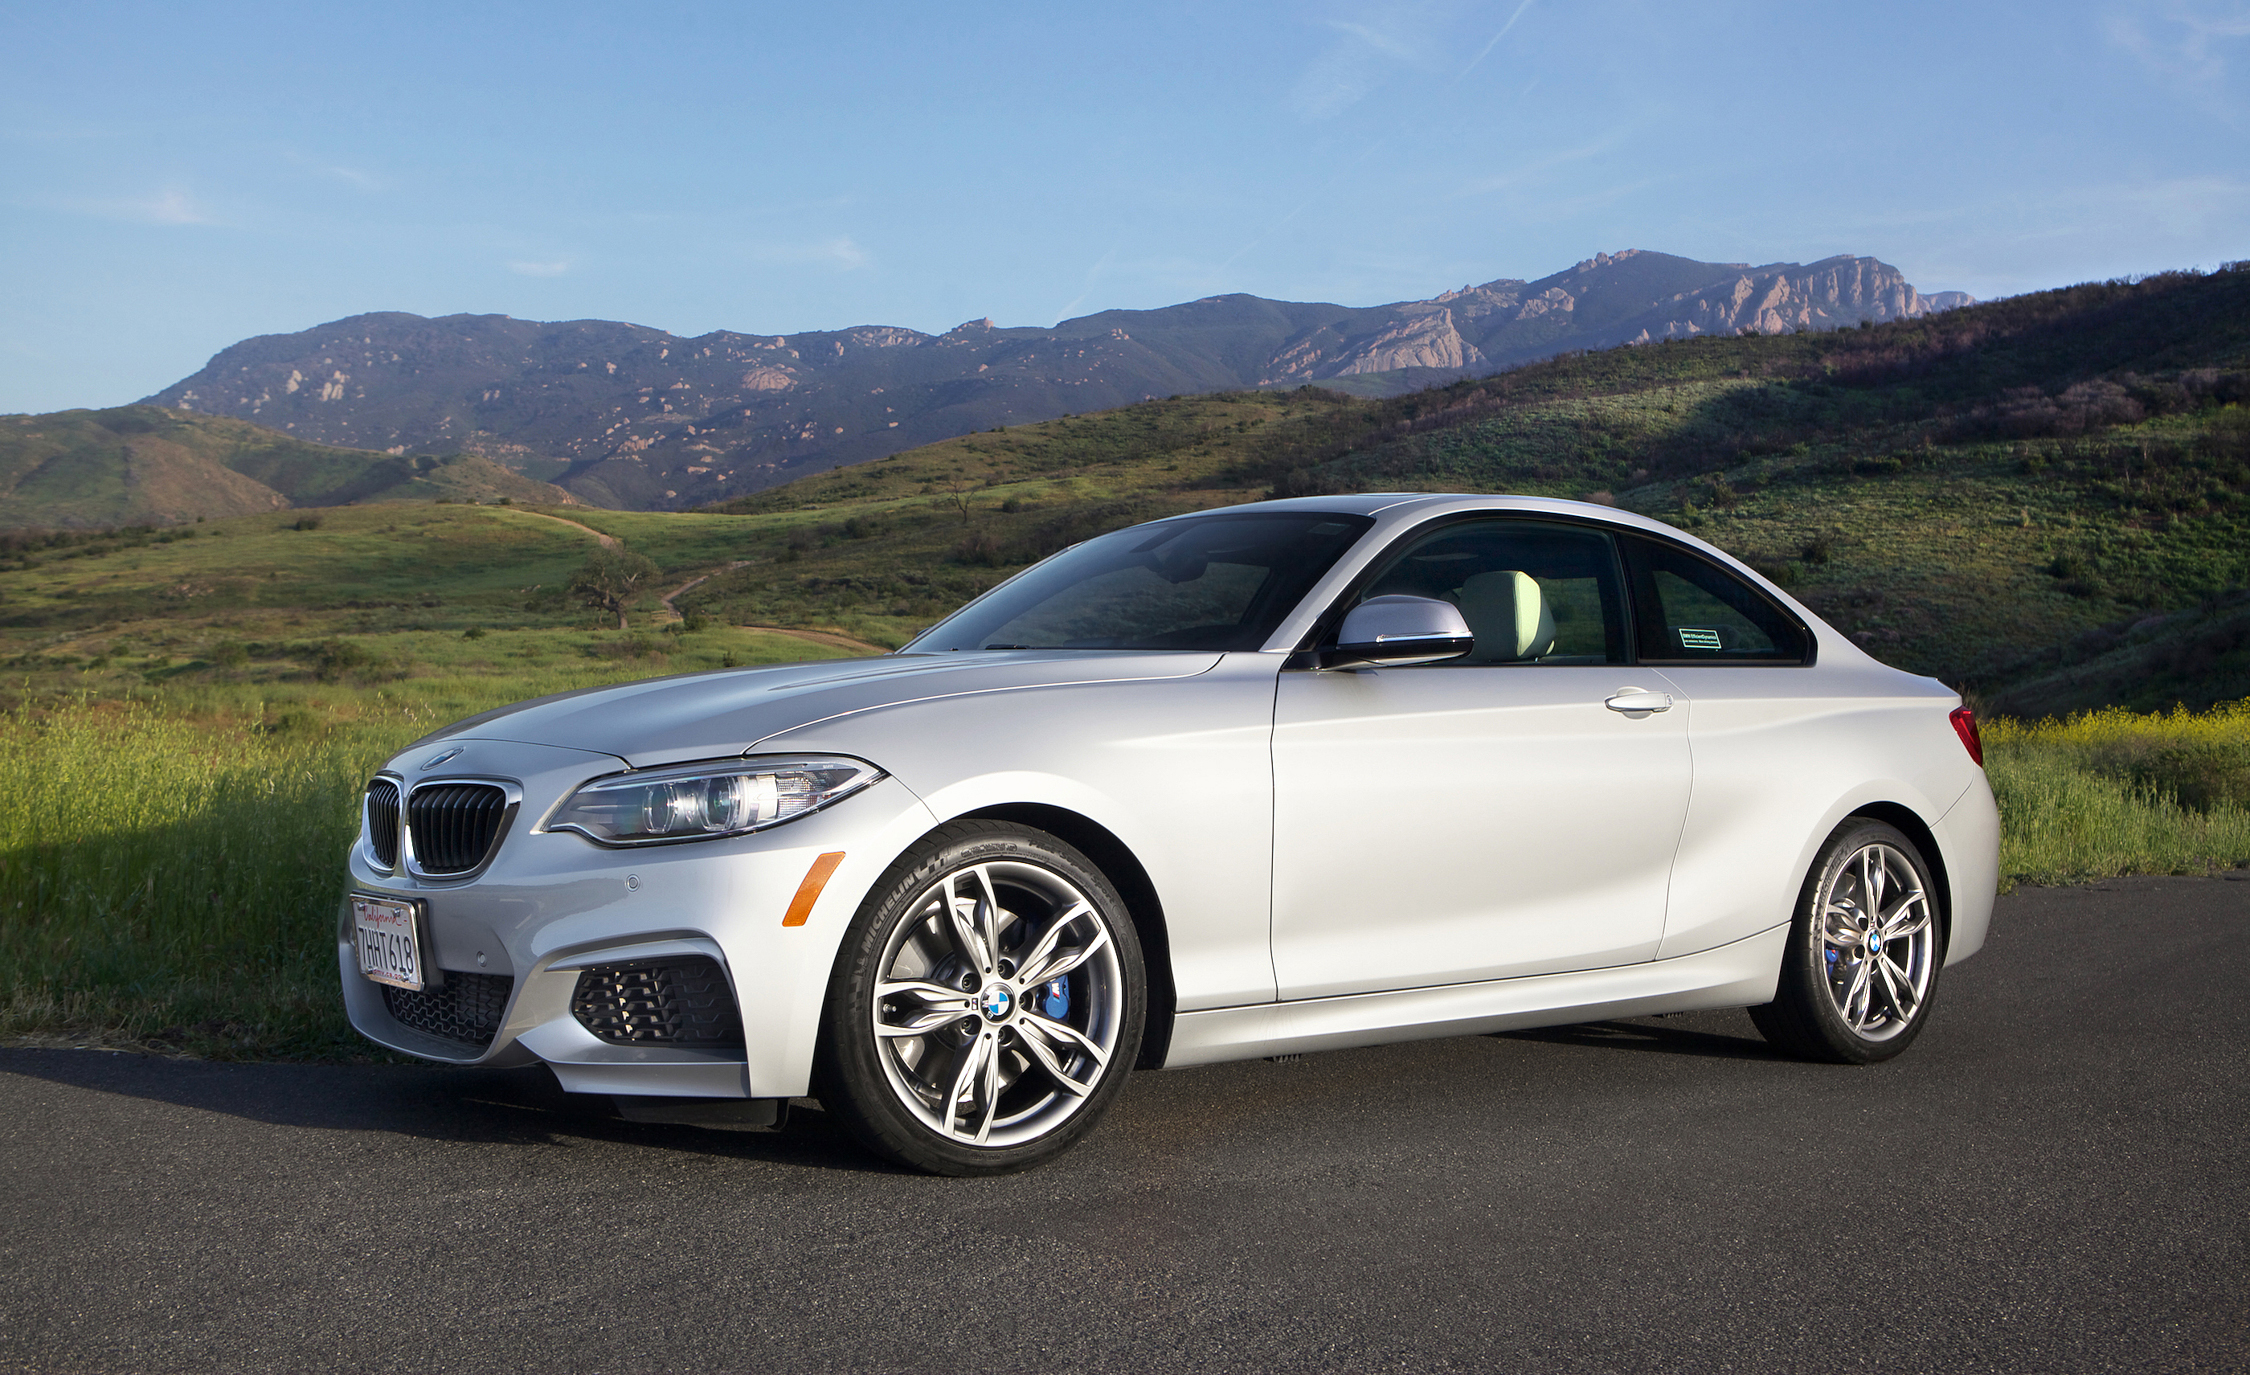 2015 BMW M235i xDrive Exterior Side and Front